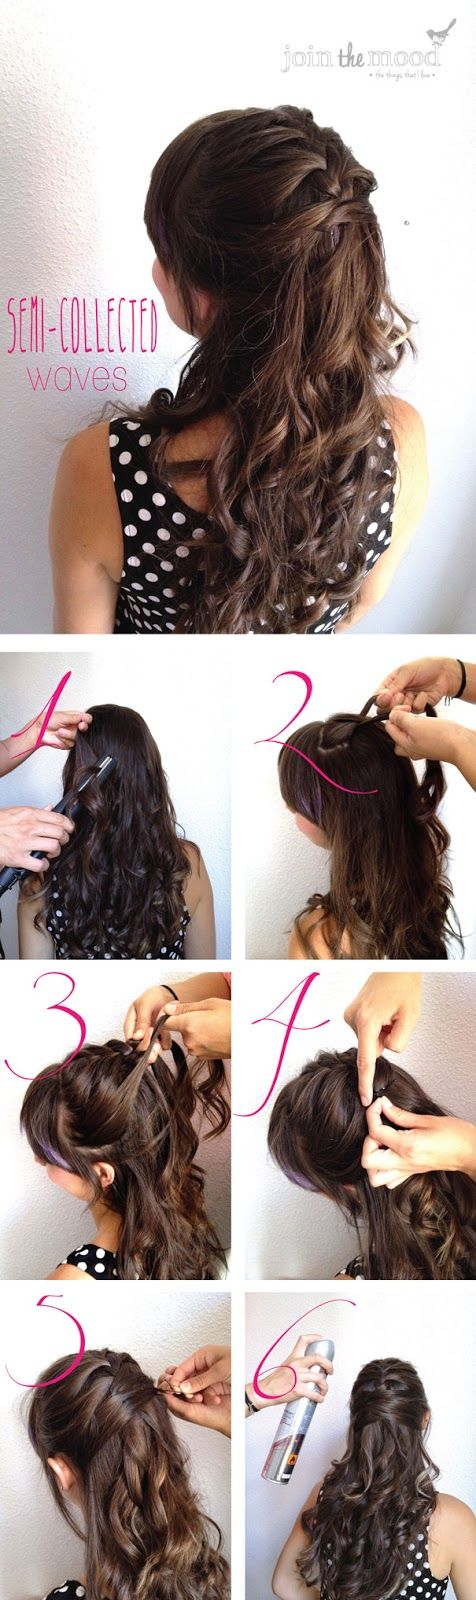 How To Make Semi-Collected Waves | hairstyles tutorial